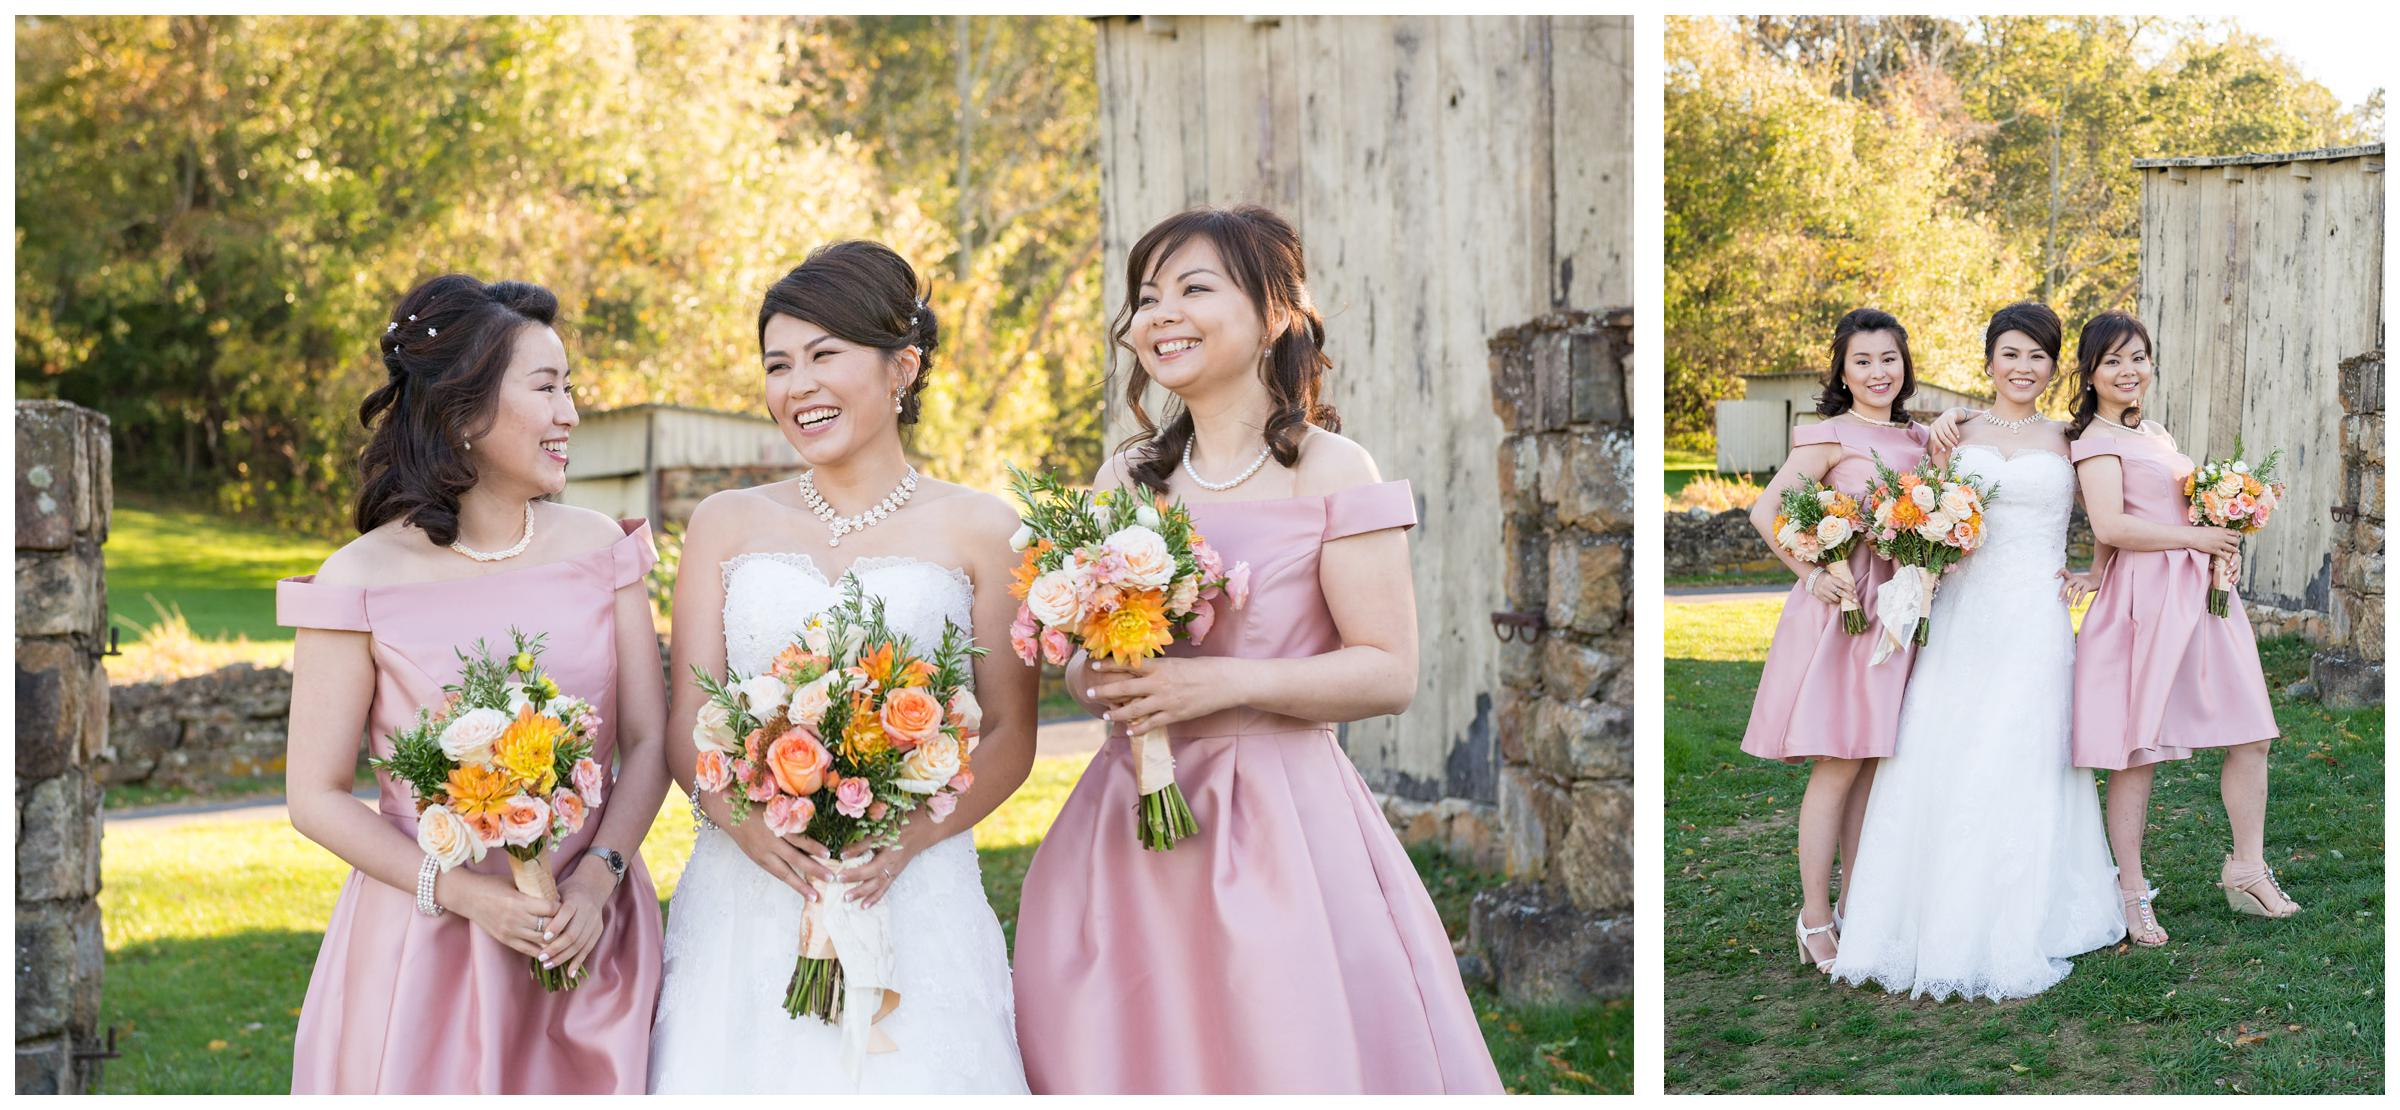 Portrait of bridesmaids near stone ruins at rustic wedding.